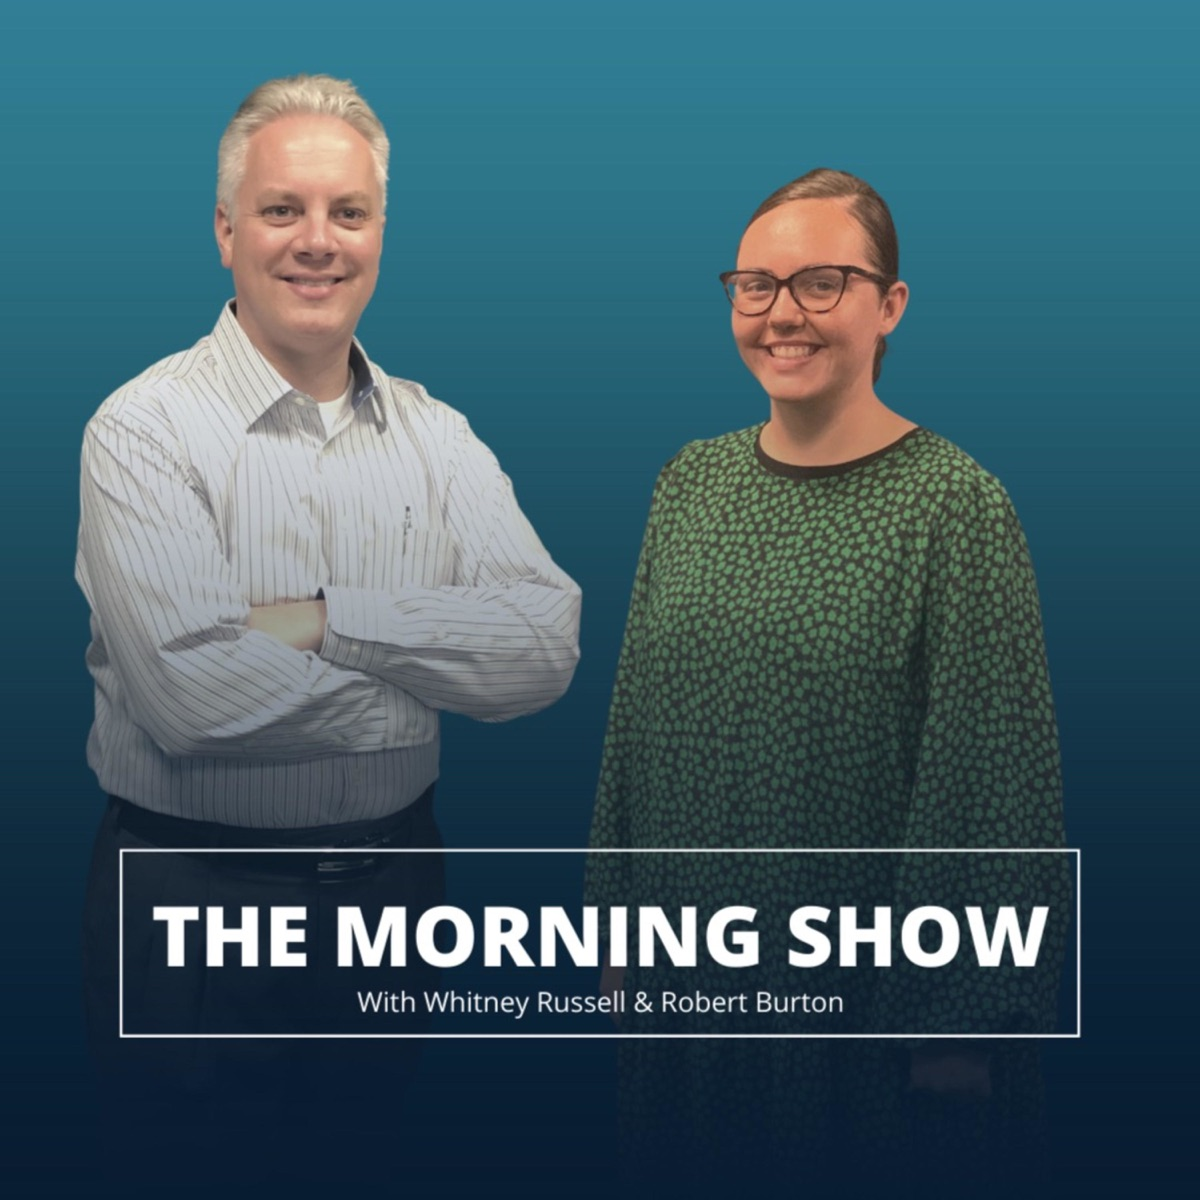 WFAC Morning Show